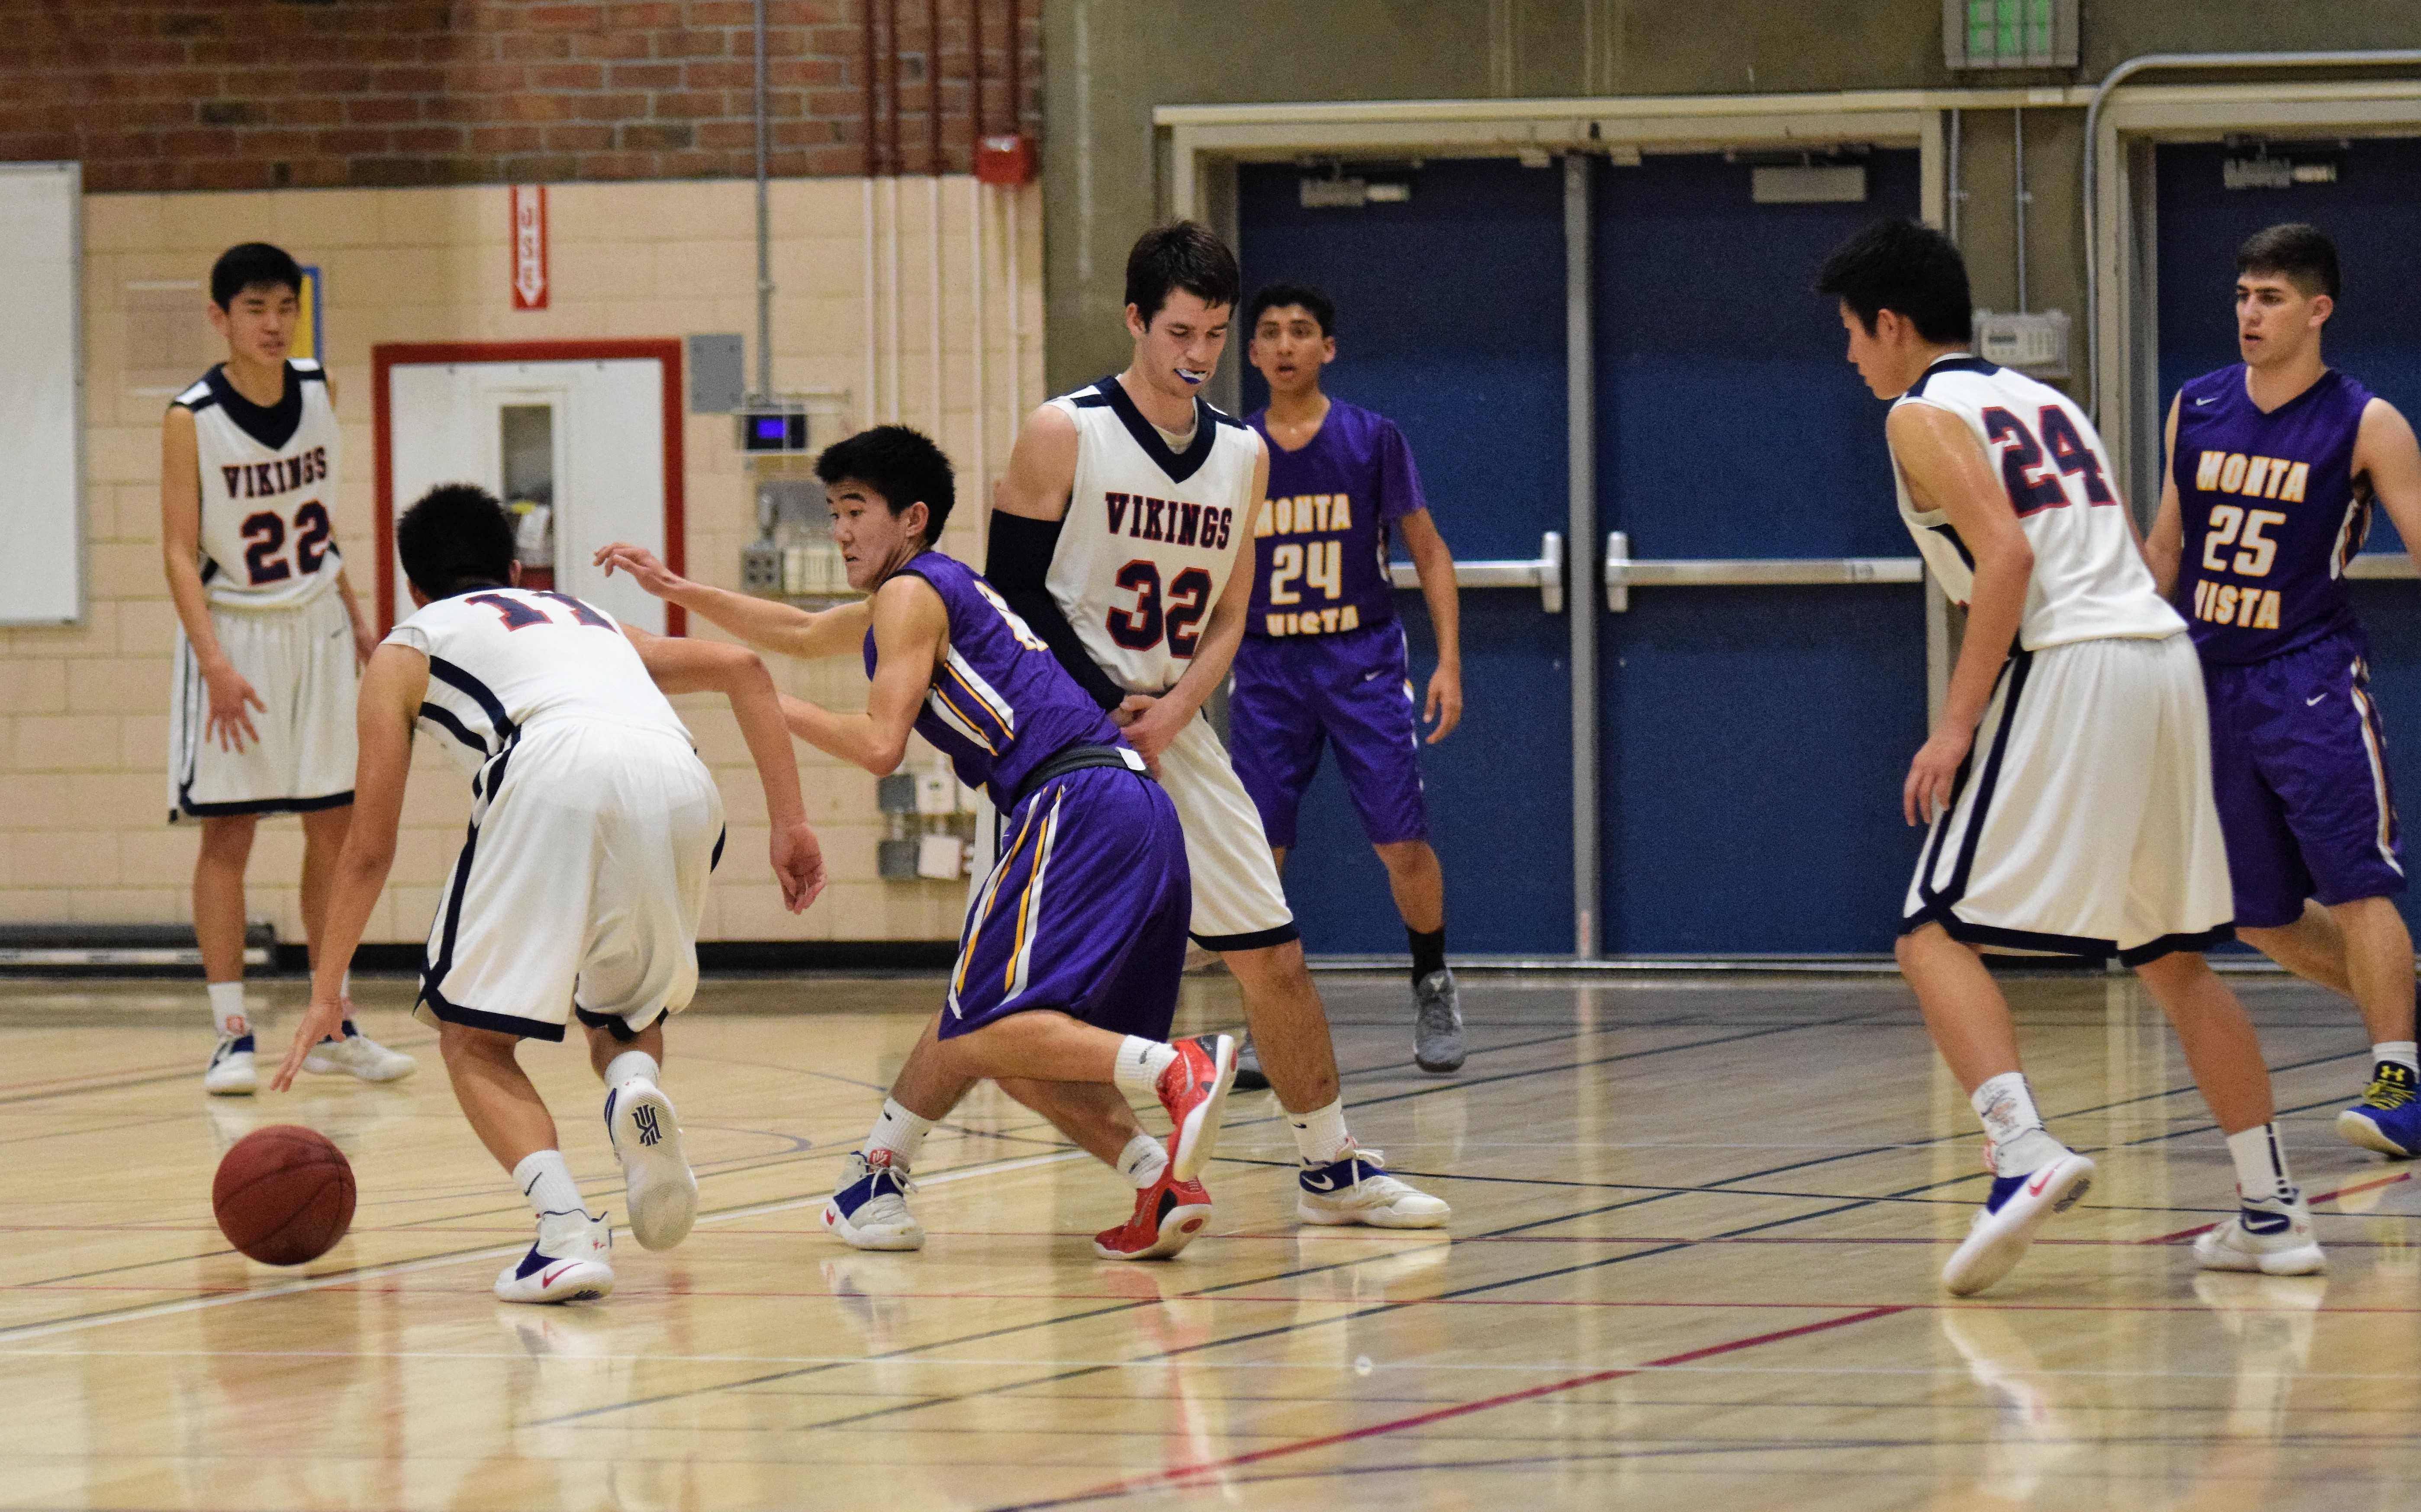 Boys basketball: Team falls to Lynbrook HS 52-54 in overtime battle